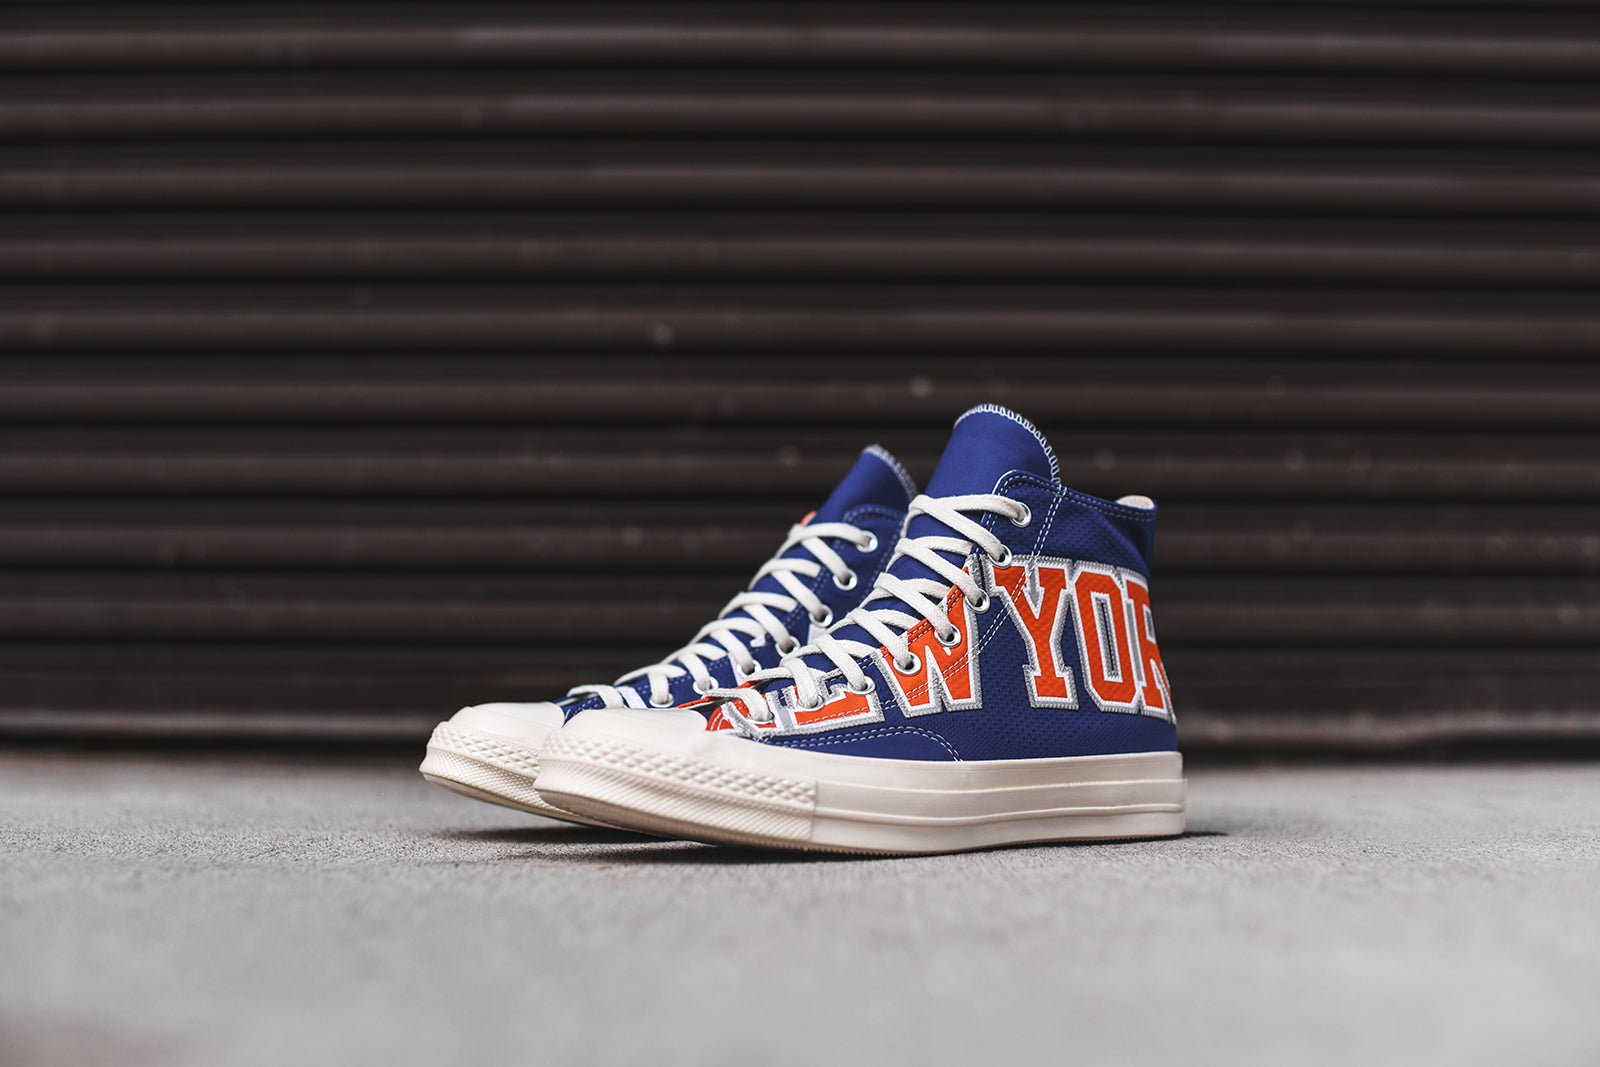 converse all star hi 70